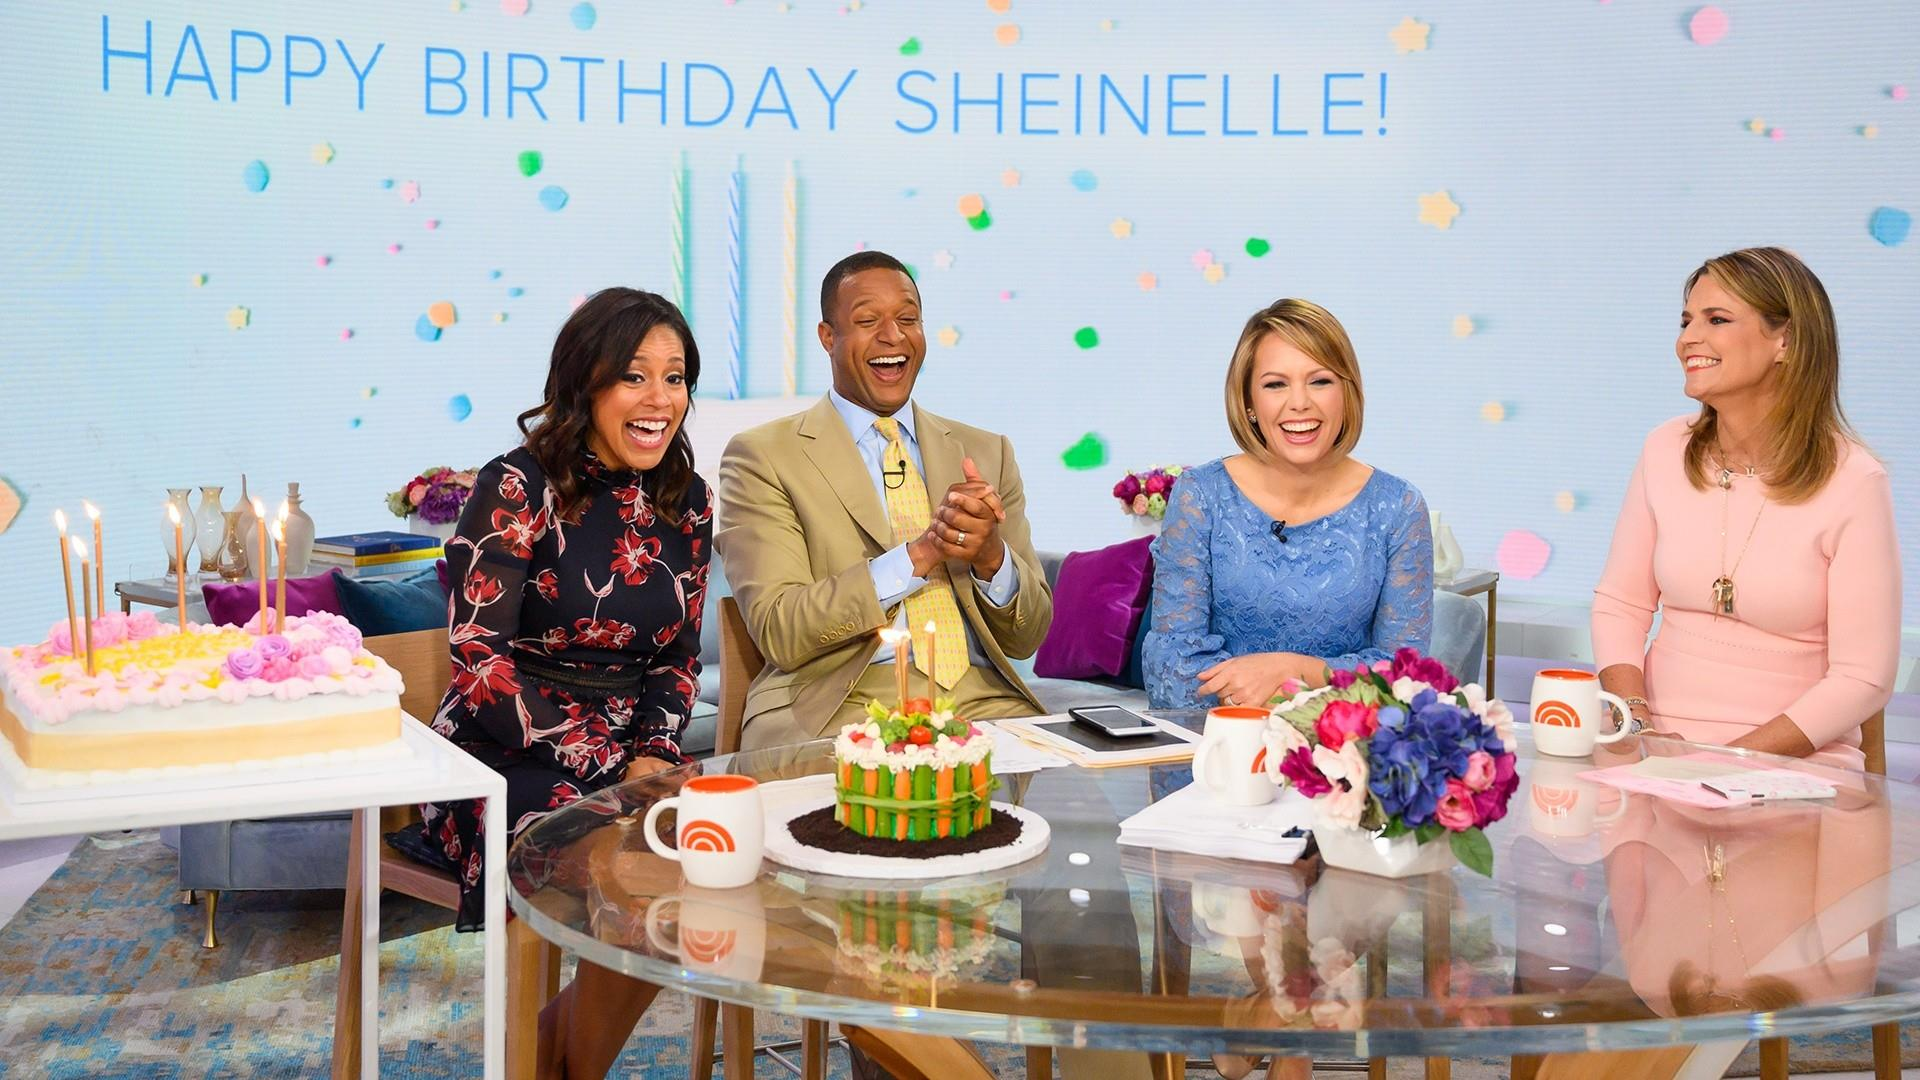 Watch Sheinelles Family Send Her Sweet Birthday Messages